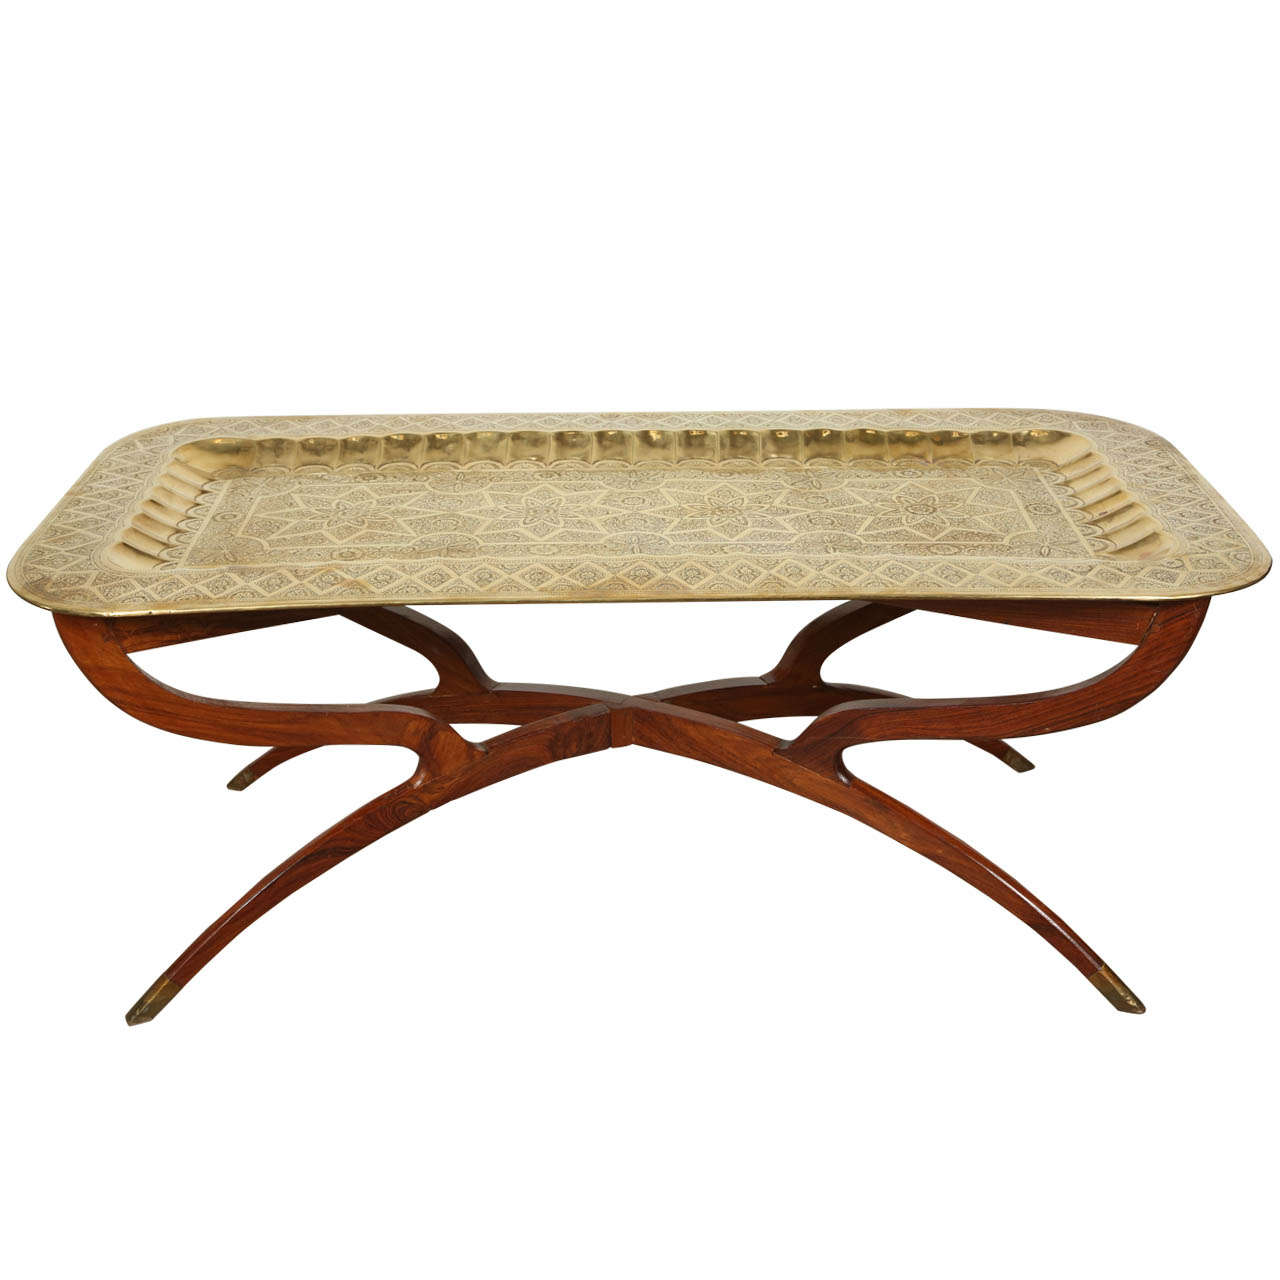 Brass Tray Mid Century Rectangular Coffee Table At 1stdibs